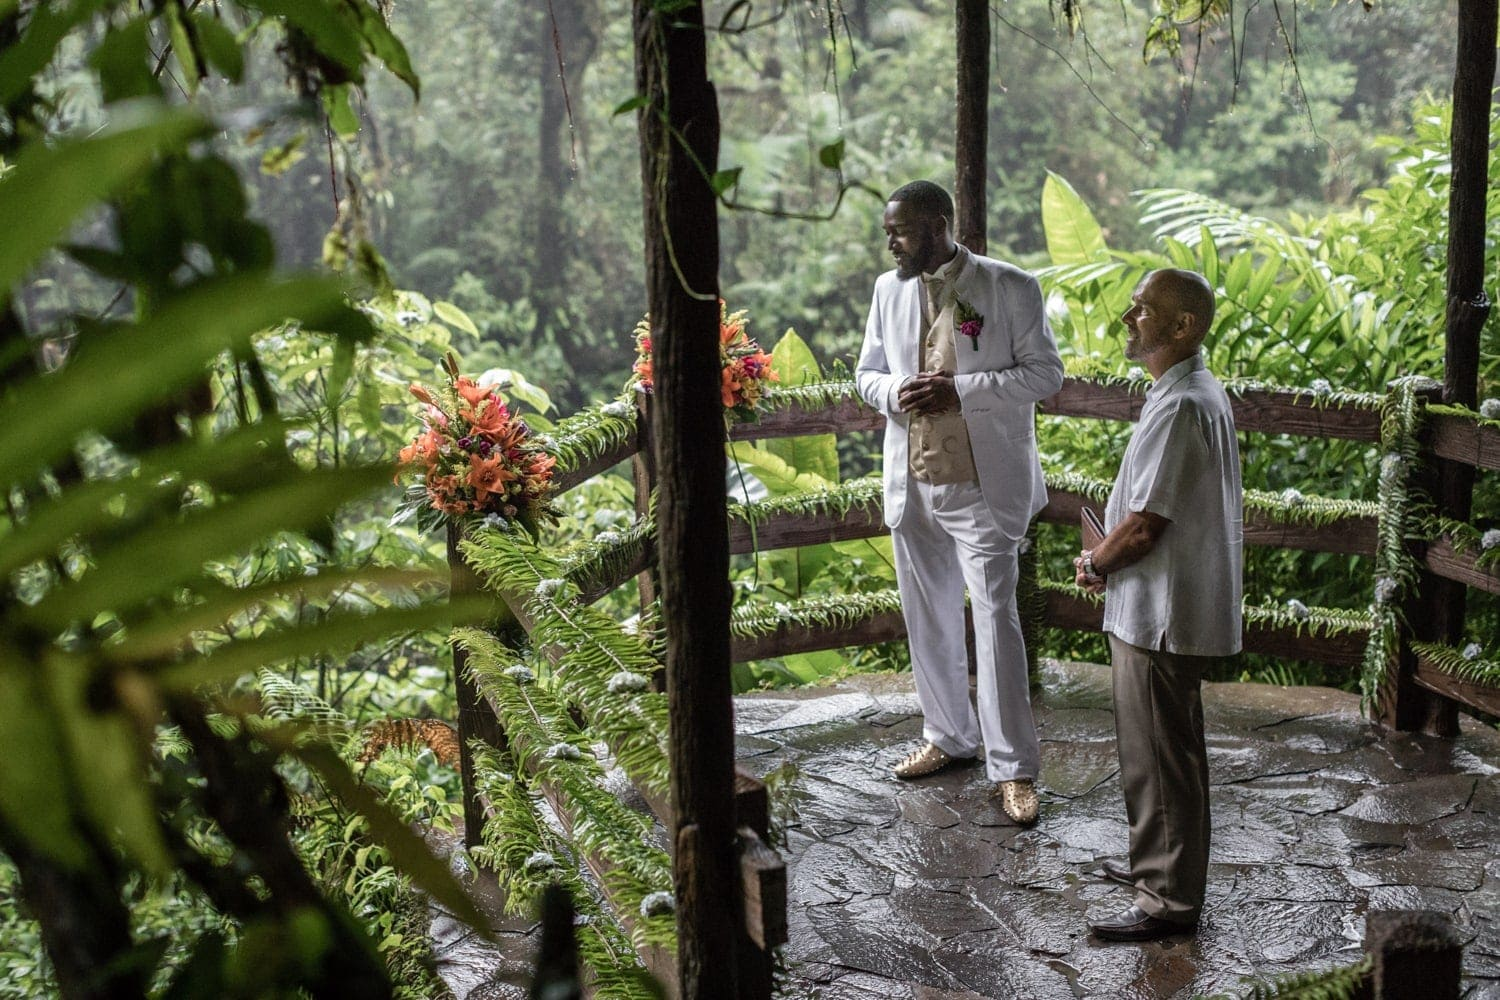 Groom waits for bride with officiant at wedding venue at La Paz Waterfall Gardens.